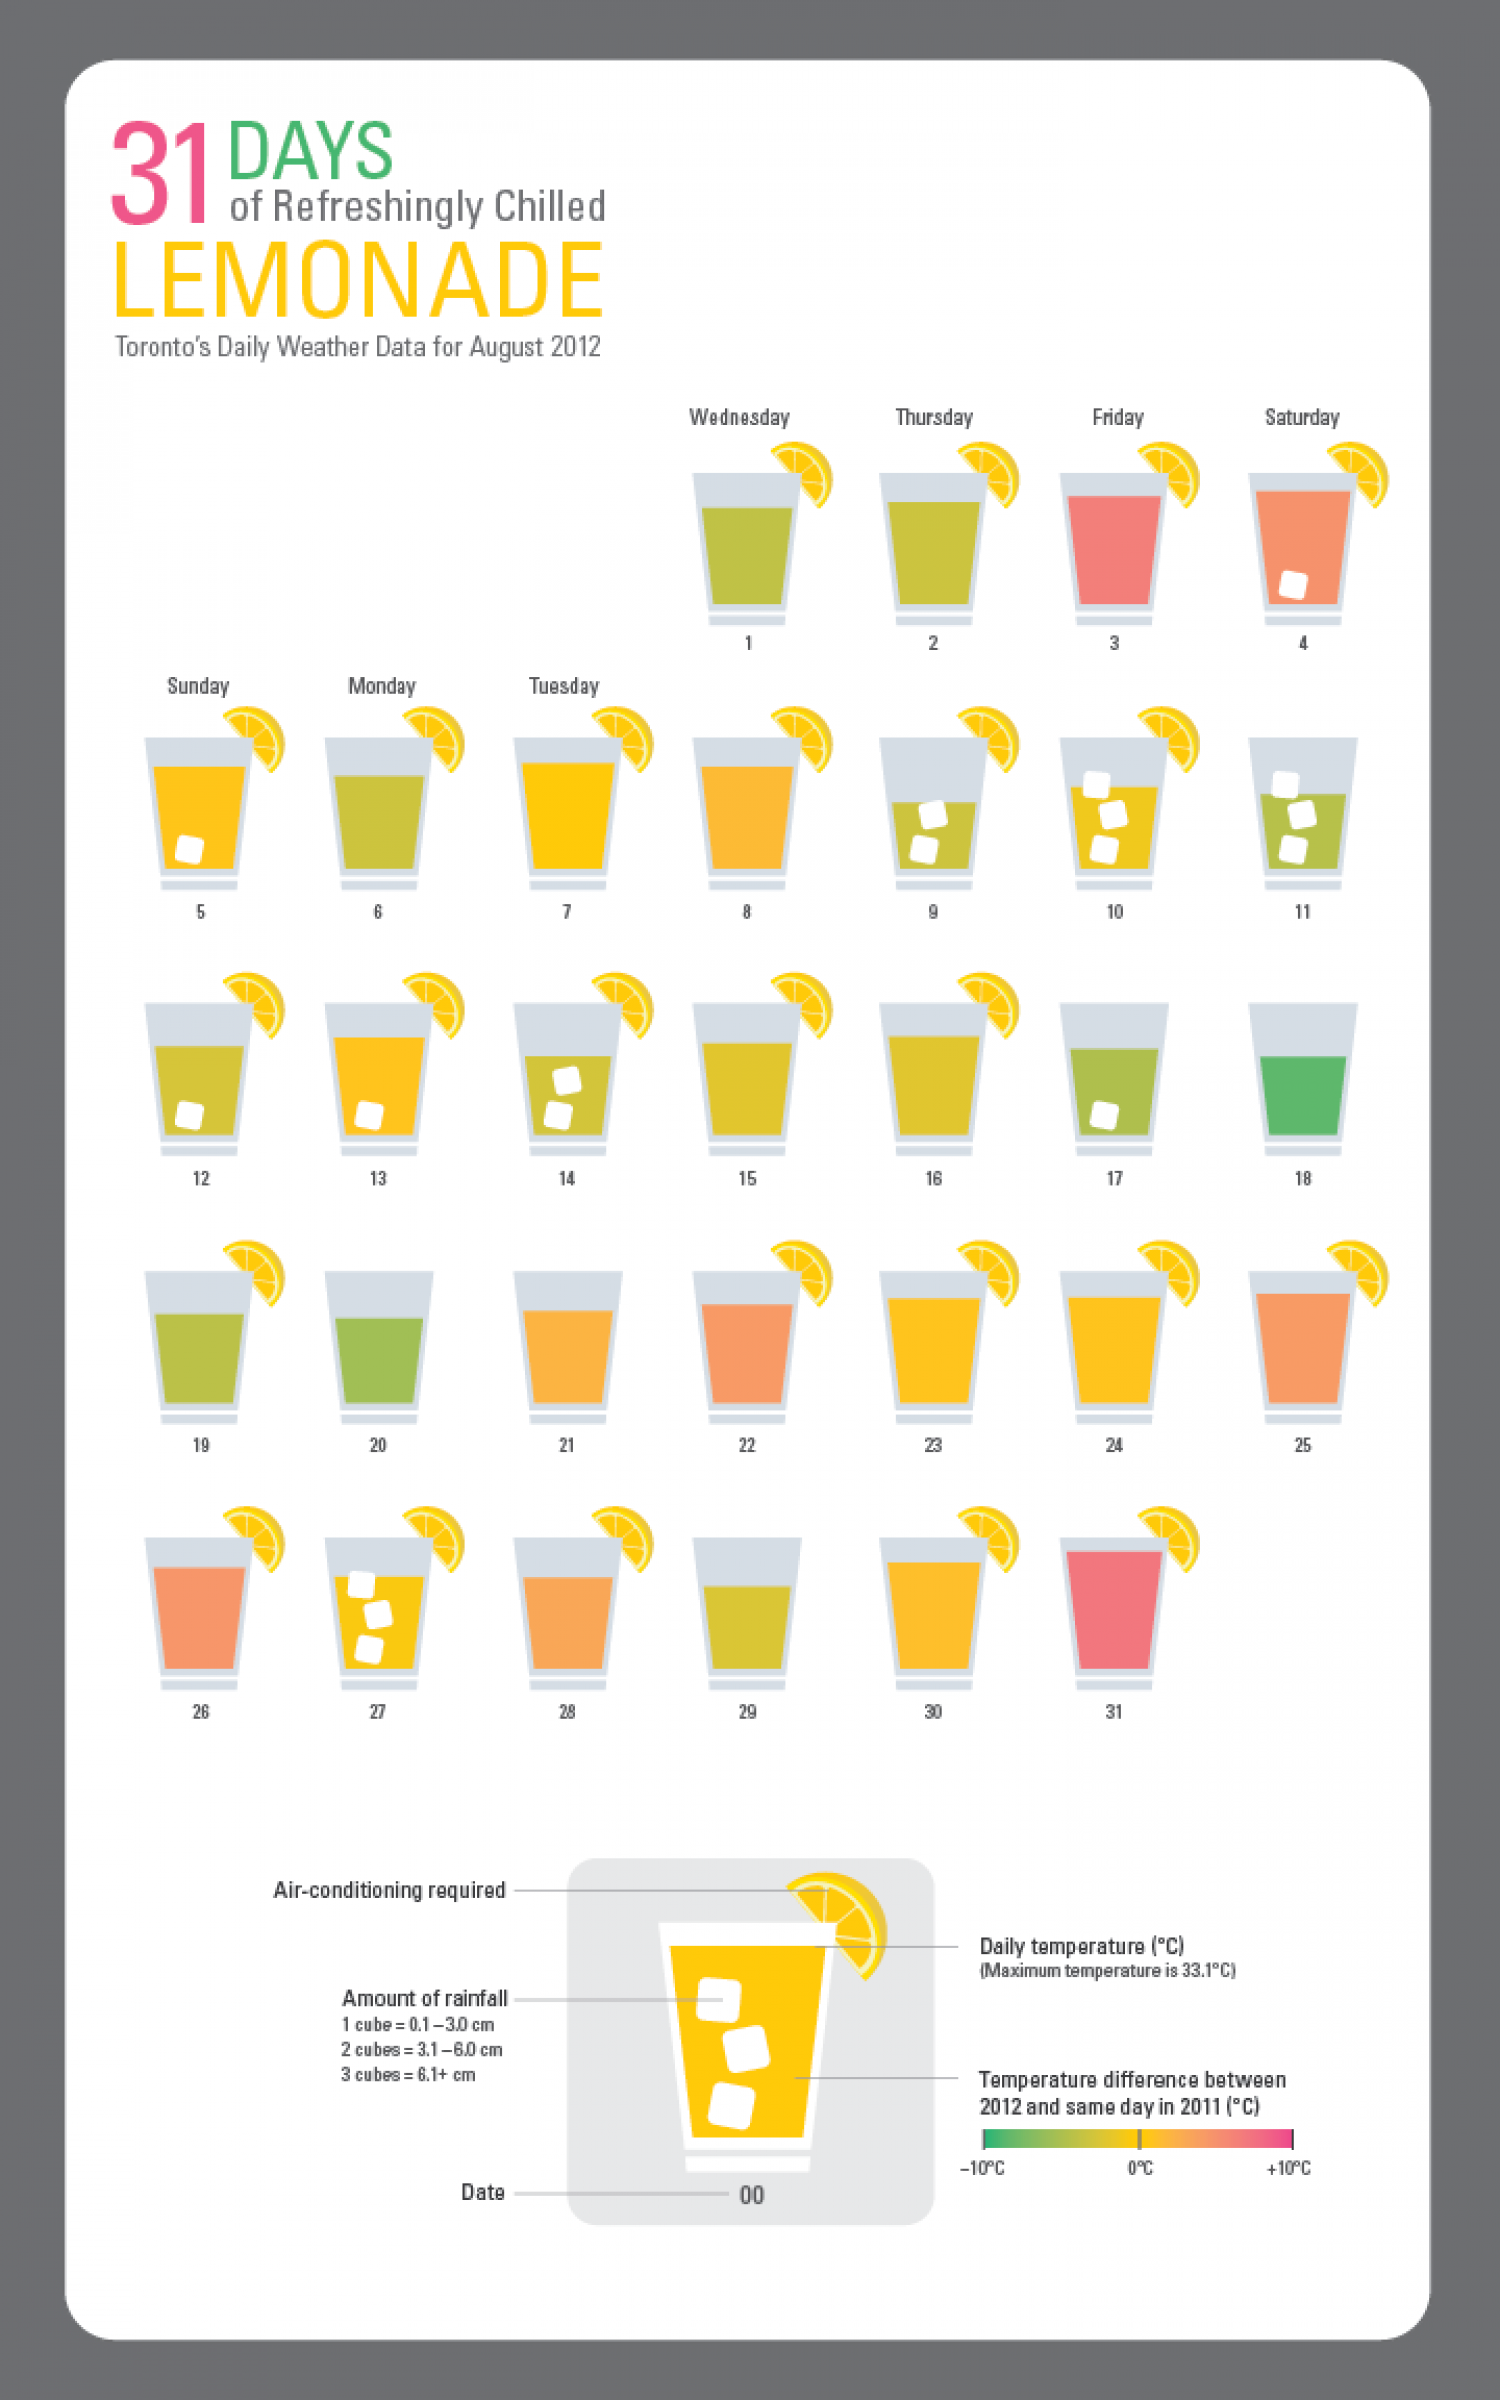 31 Days of Refreshing Lemonade (Refreshed!) Infographic